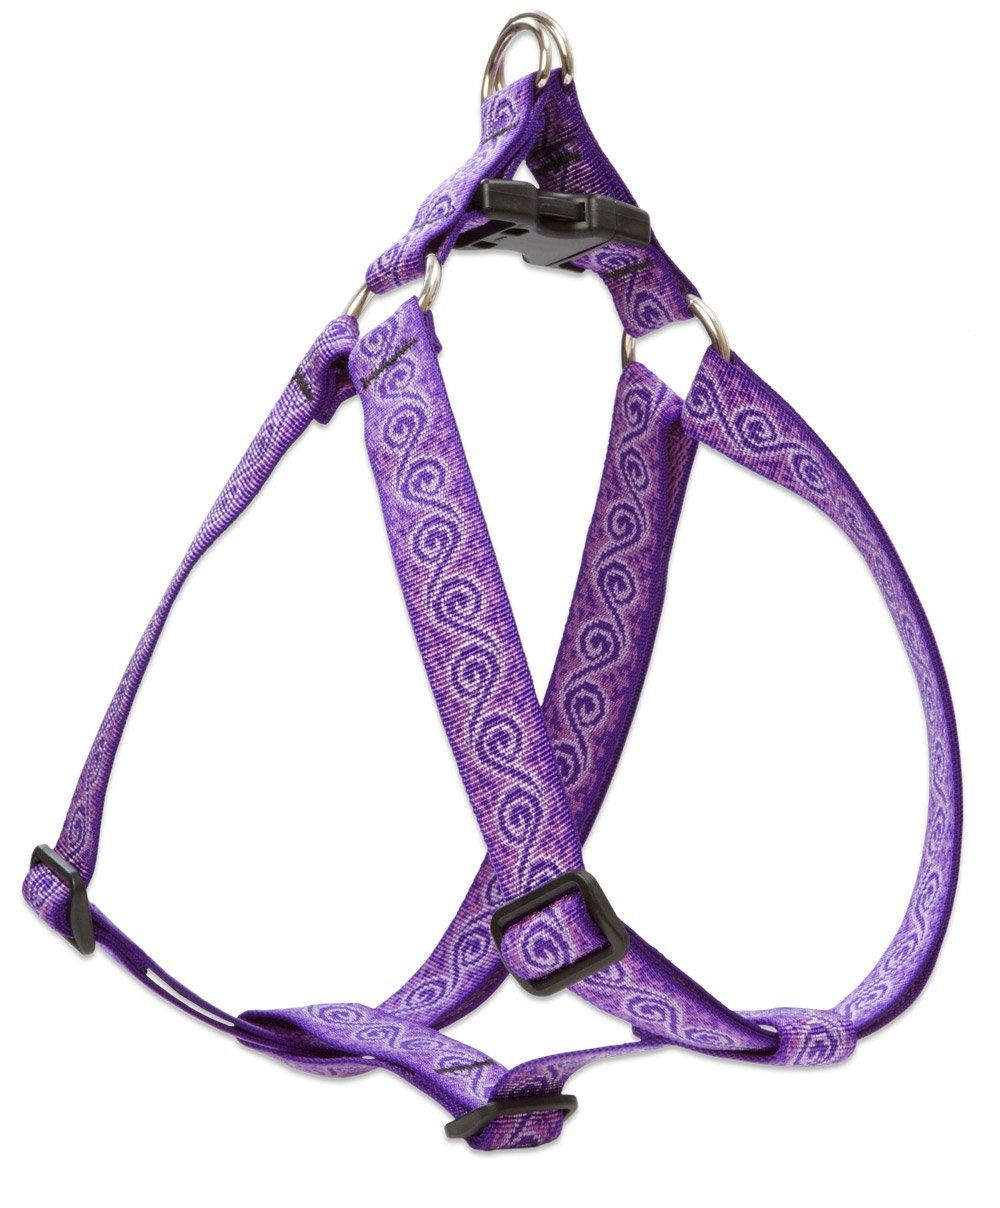 Lupine 1 Inch Jelly Roll Step In Dog Harness for Large Dogs >>> You can get additional details at the image link.